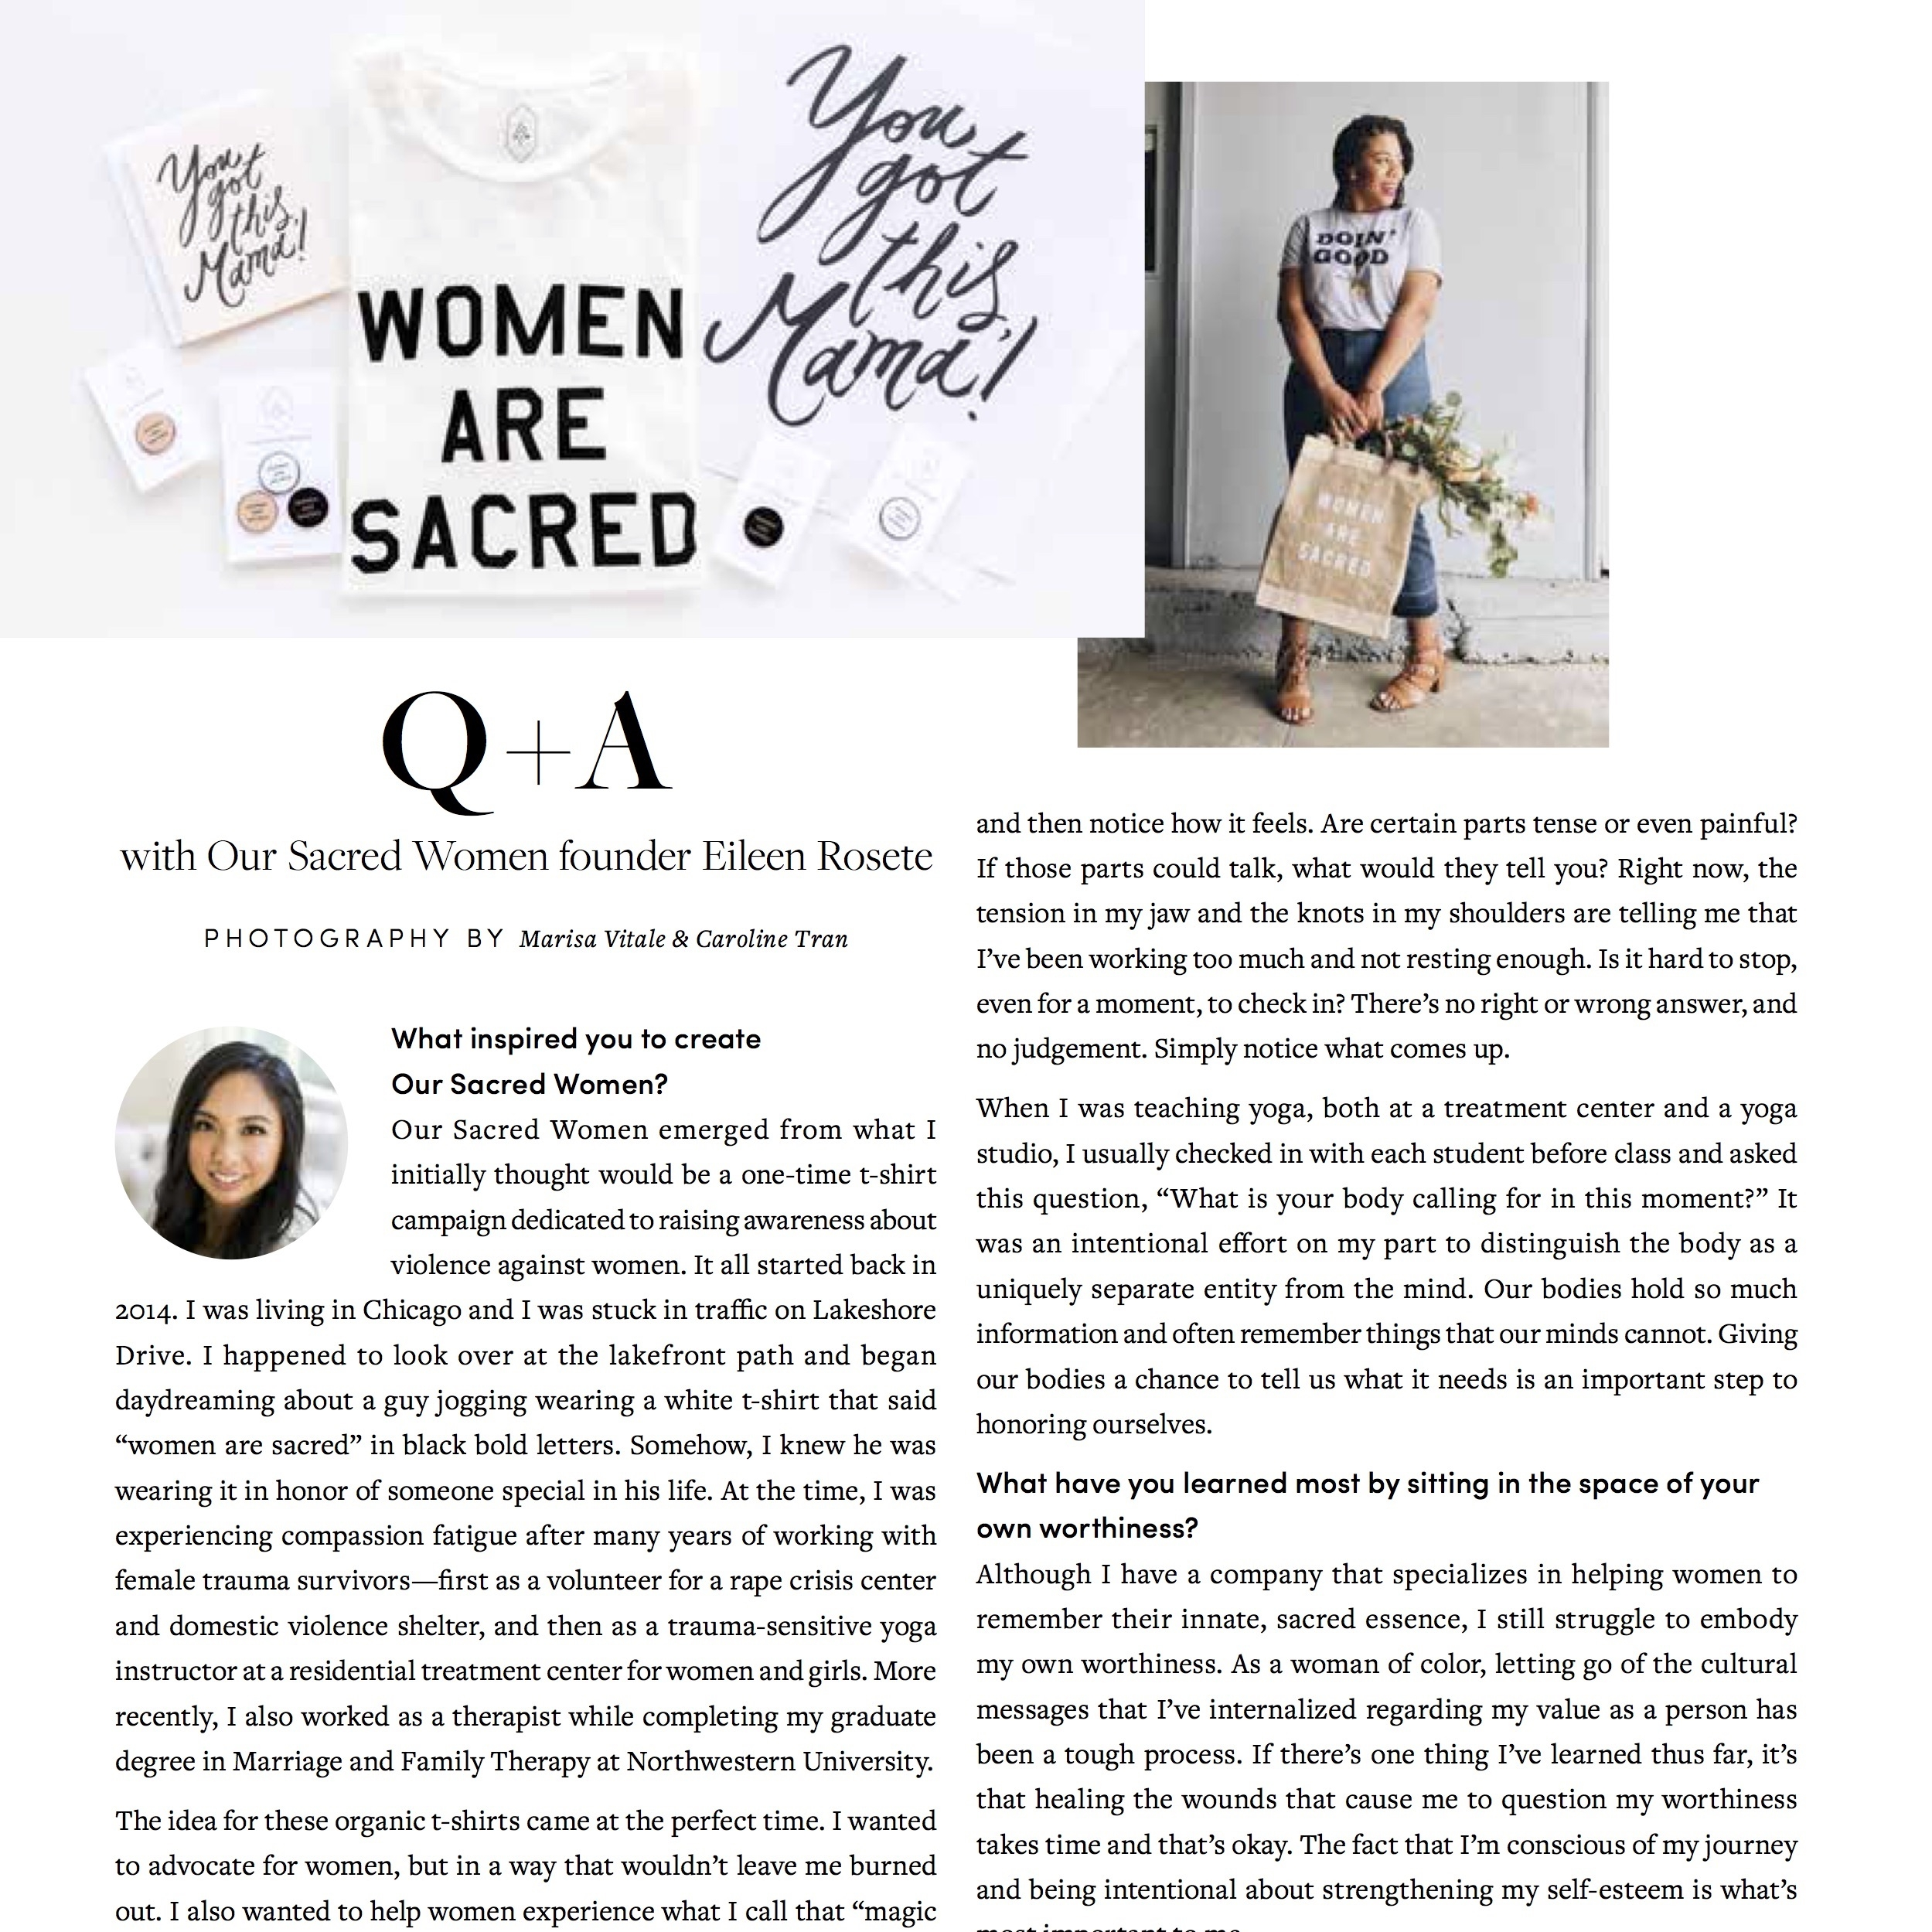 January 29, 2018  THOUGHTFULLY MAGAZINE  (PRINT & DIGITAL) 3-YEAR ANNIVERSARY ISSUE  Q+A with Our Sacred Women Founder Eileen Rosete